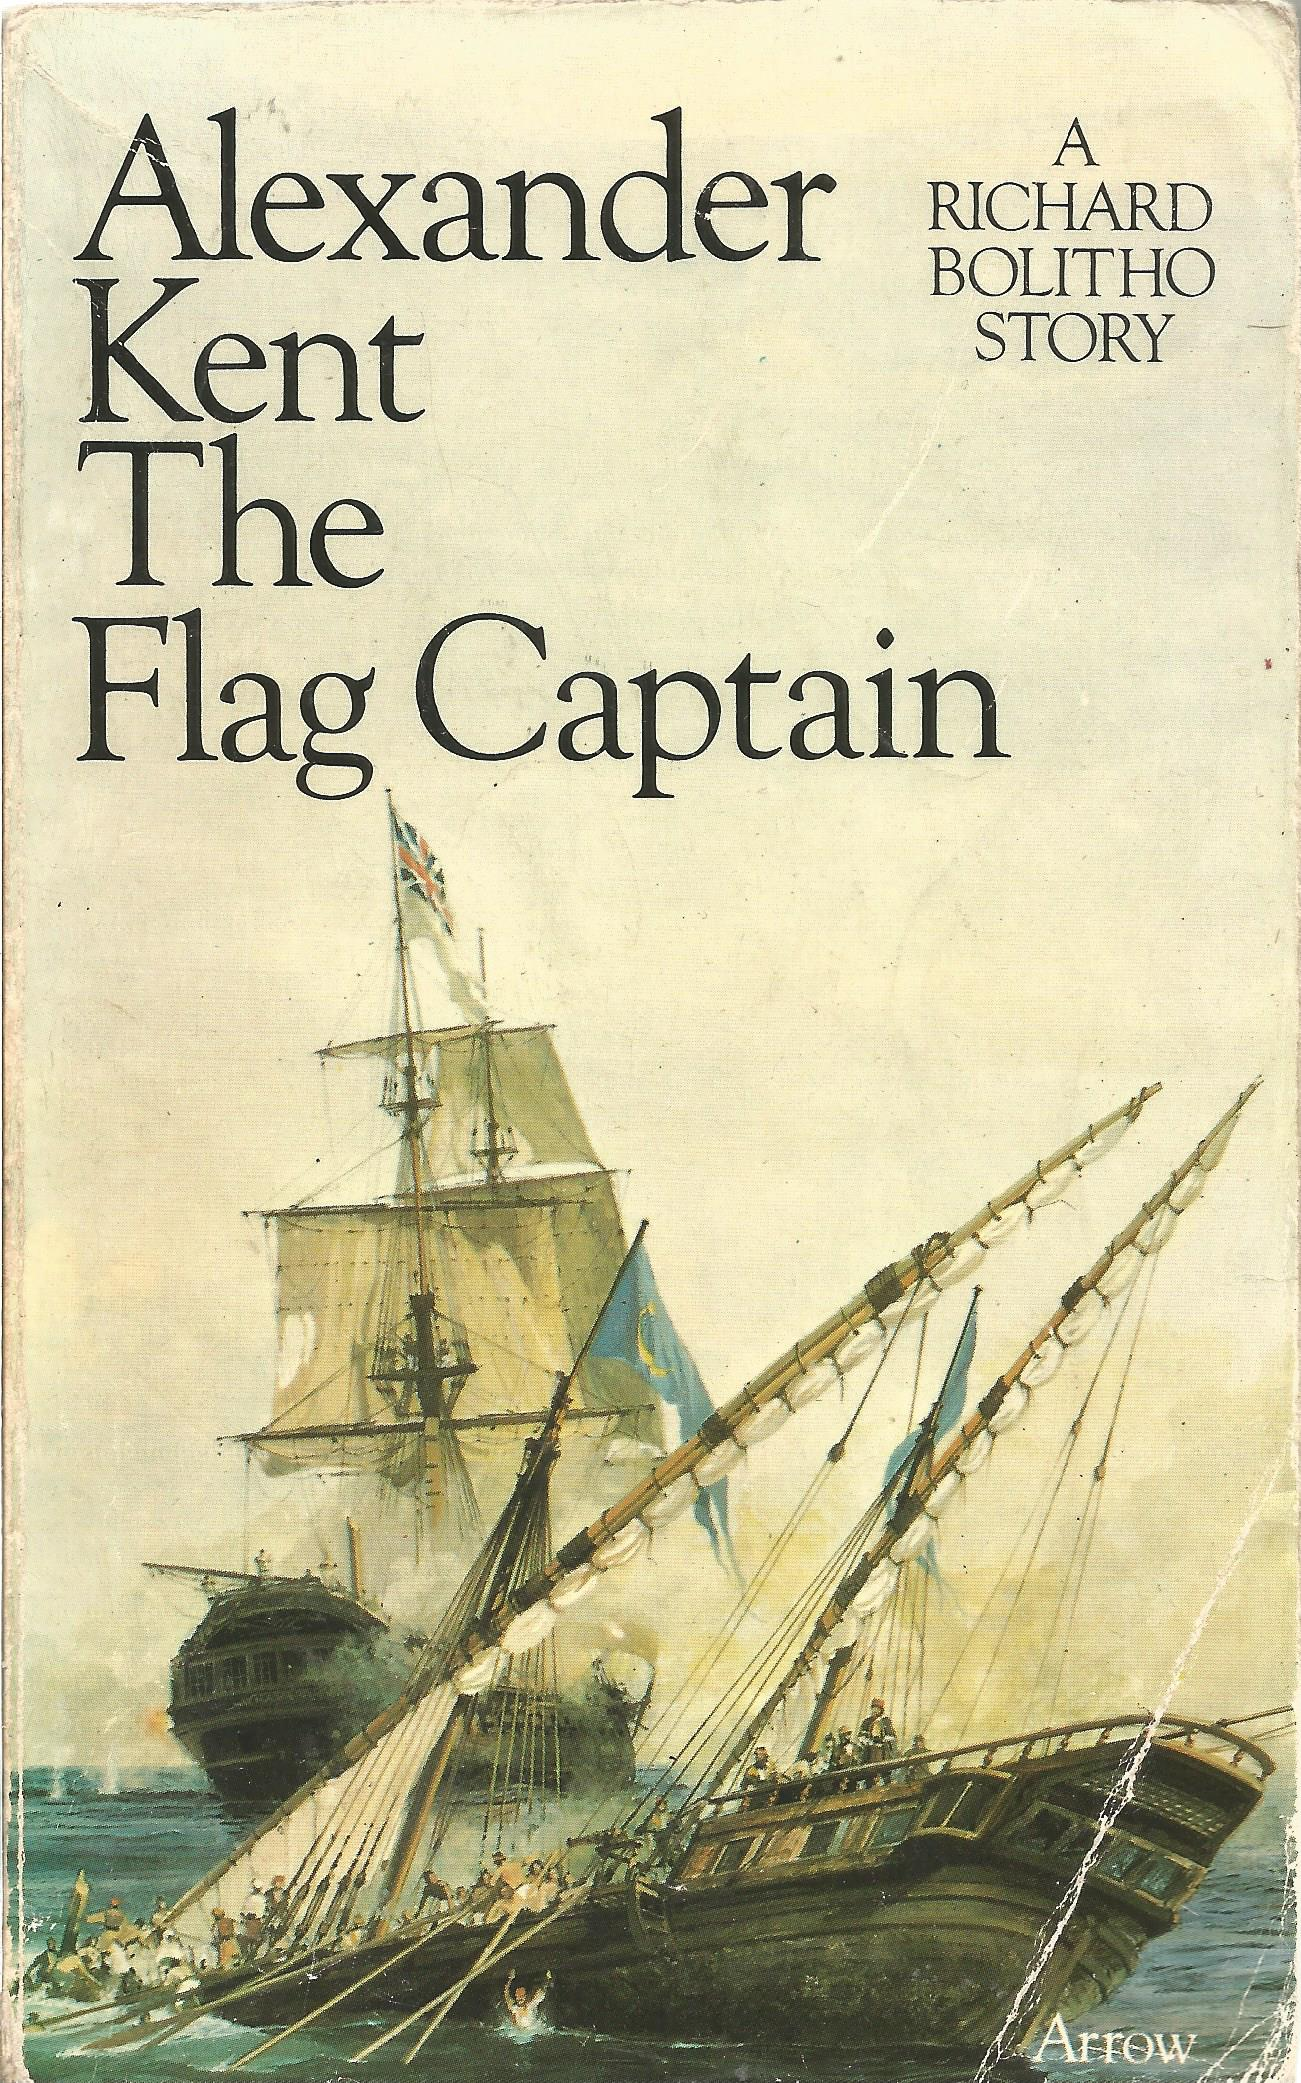 Alexander Kent Paperback Book The Flag Captain signed by the Author on the Title Page some minor